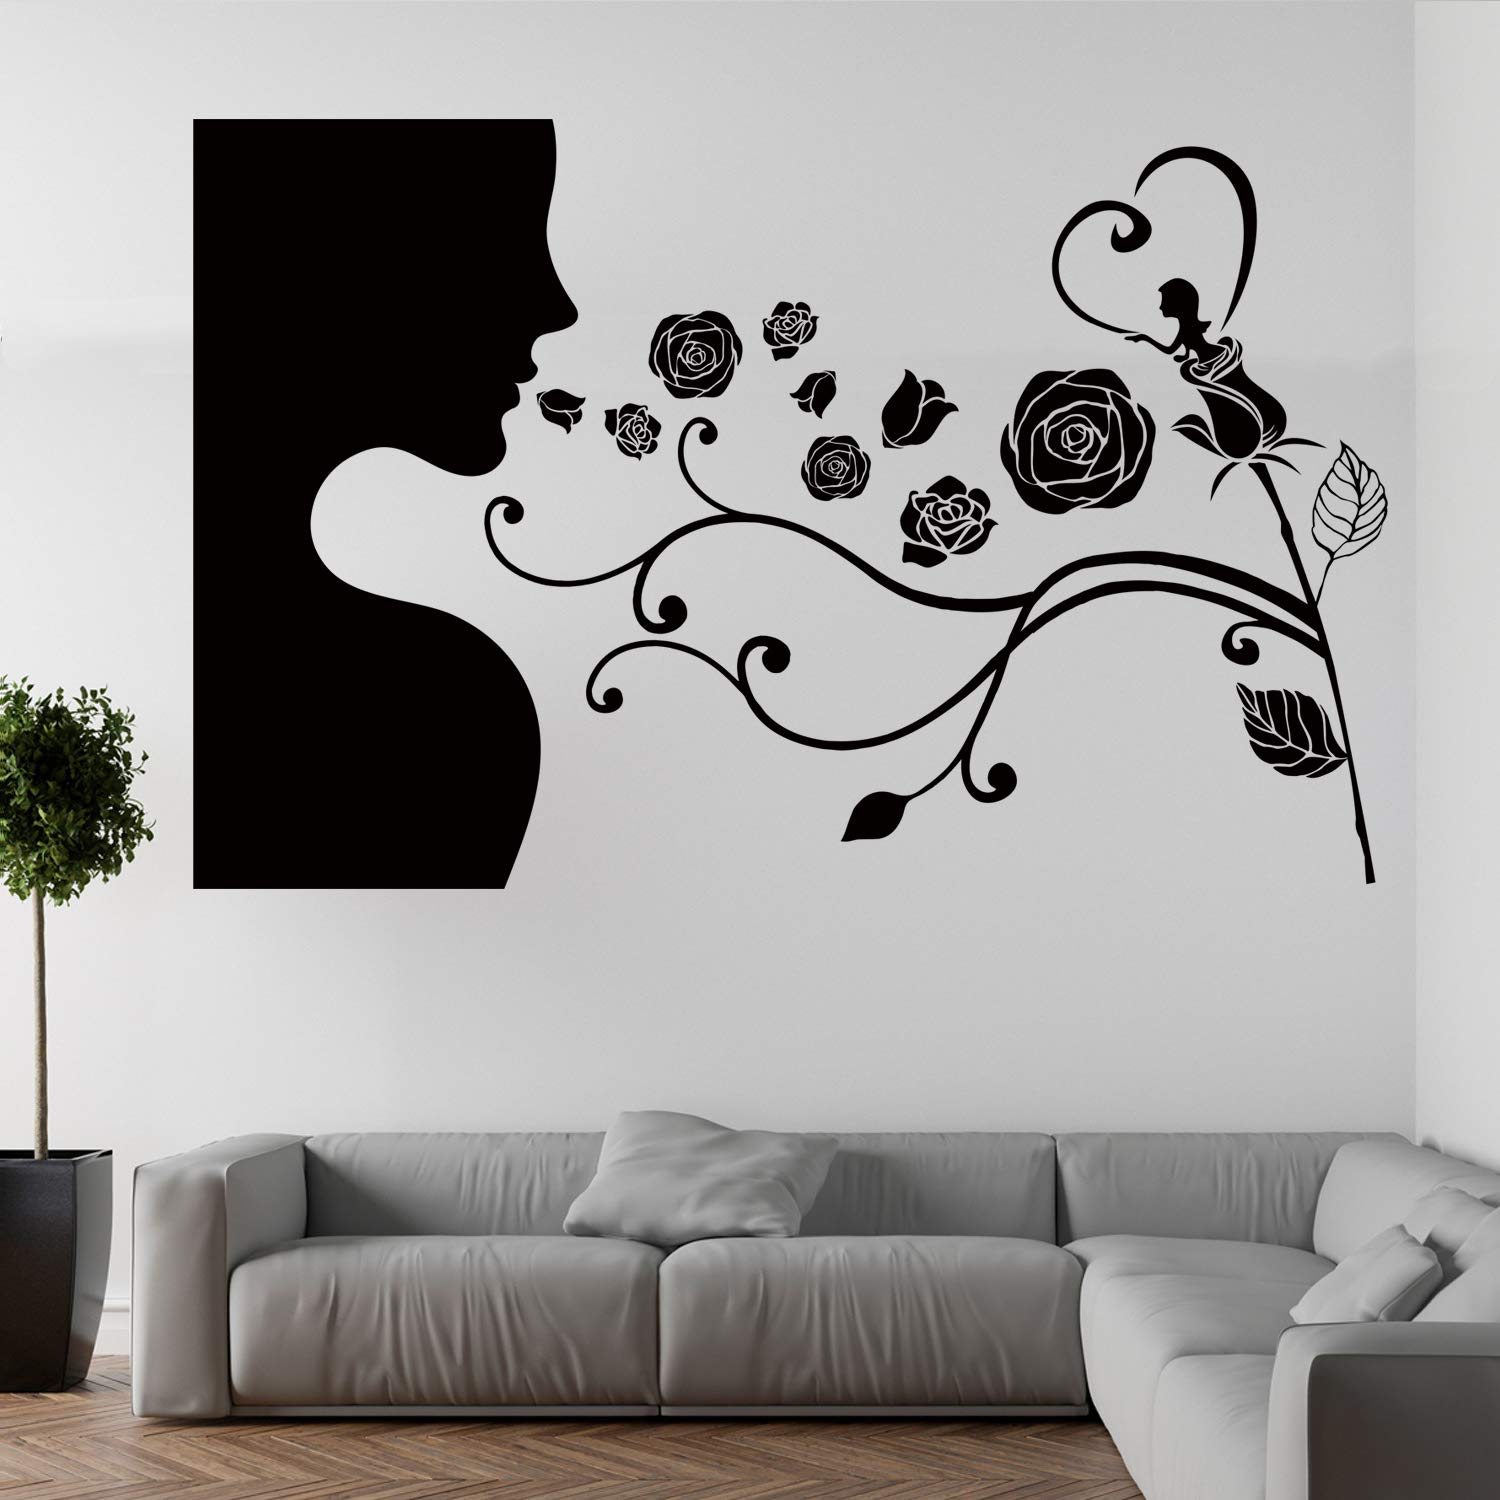 VODOE Flower Wall Decals, Ideas Wall Decal, Plant Rose Tree Leaf Branch Boys Girls Personalized Stickers Suitable for Family Living Room Vinyl Art Home Decor(Black 24.4 X 15.7 inches)